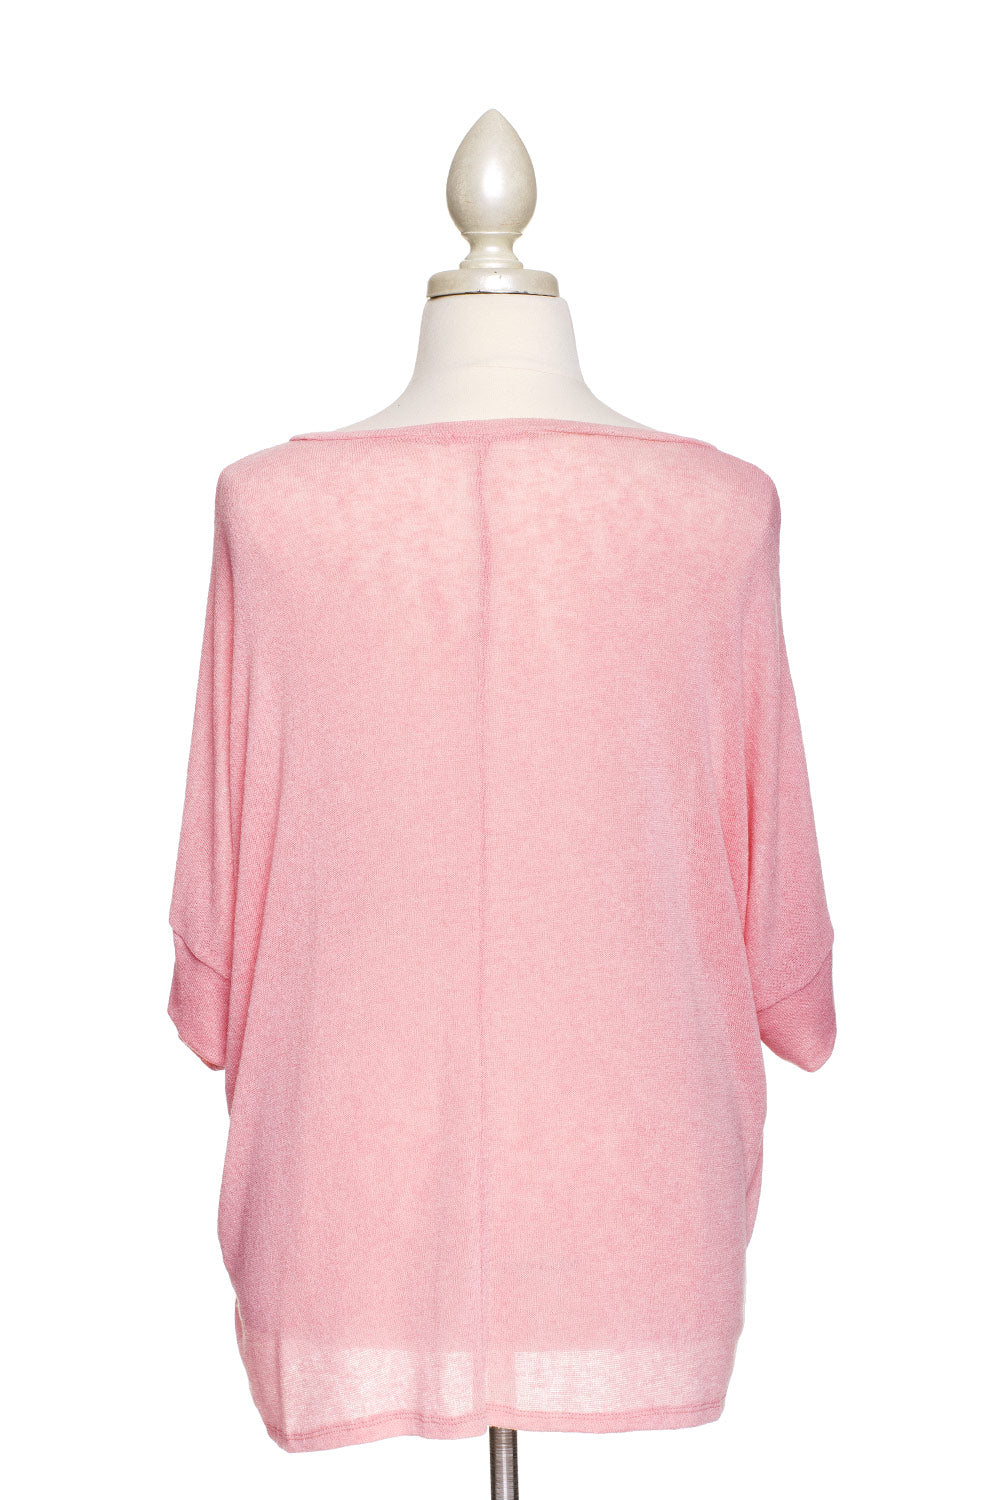 Type 2 Sublime Top in Pink